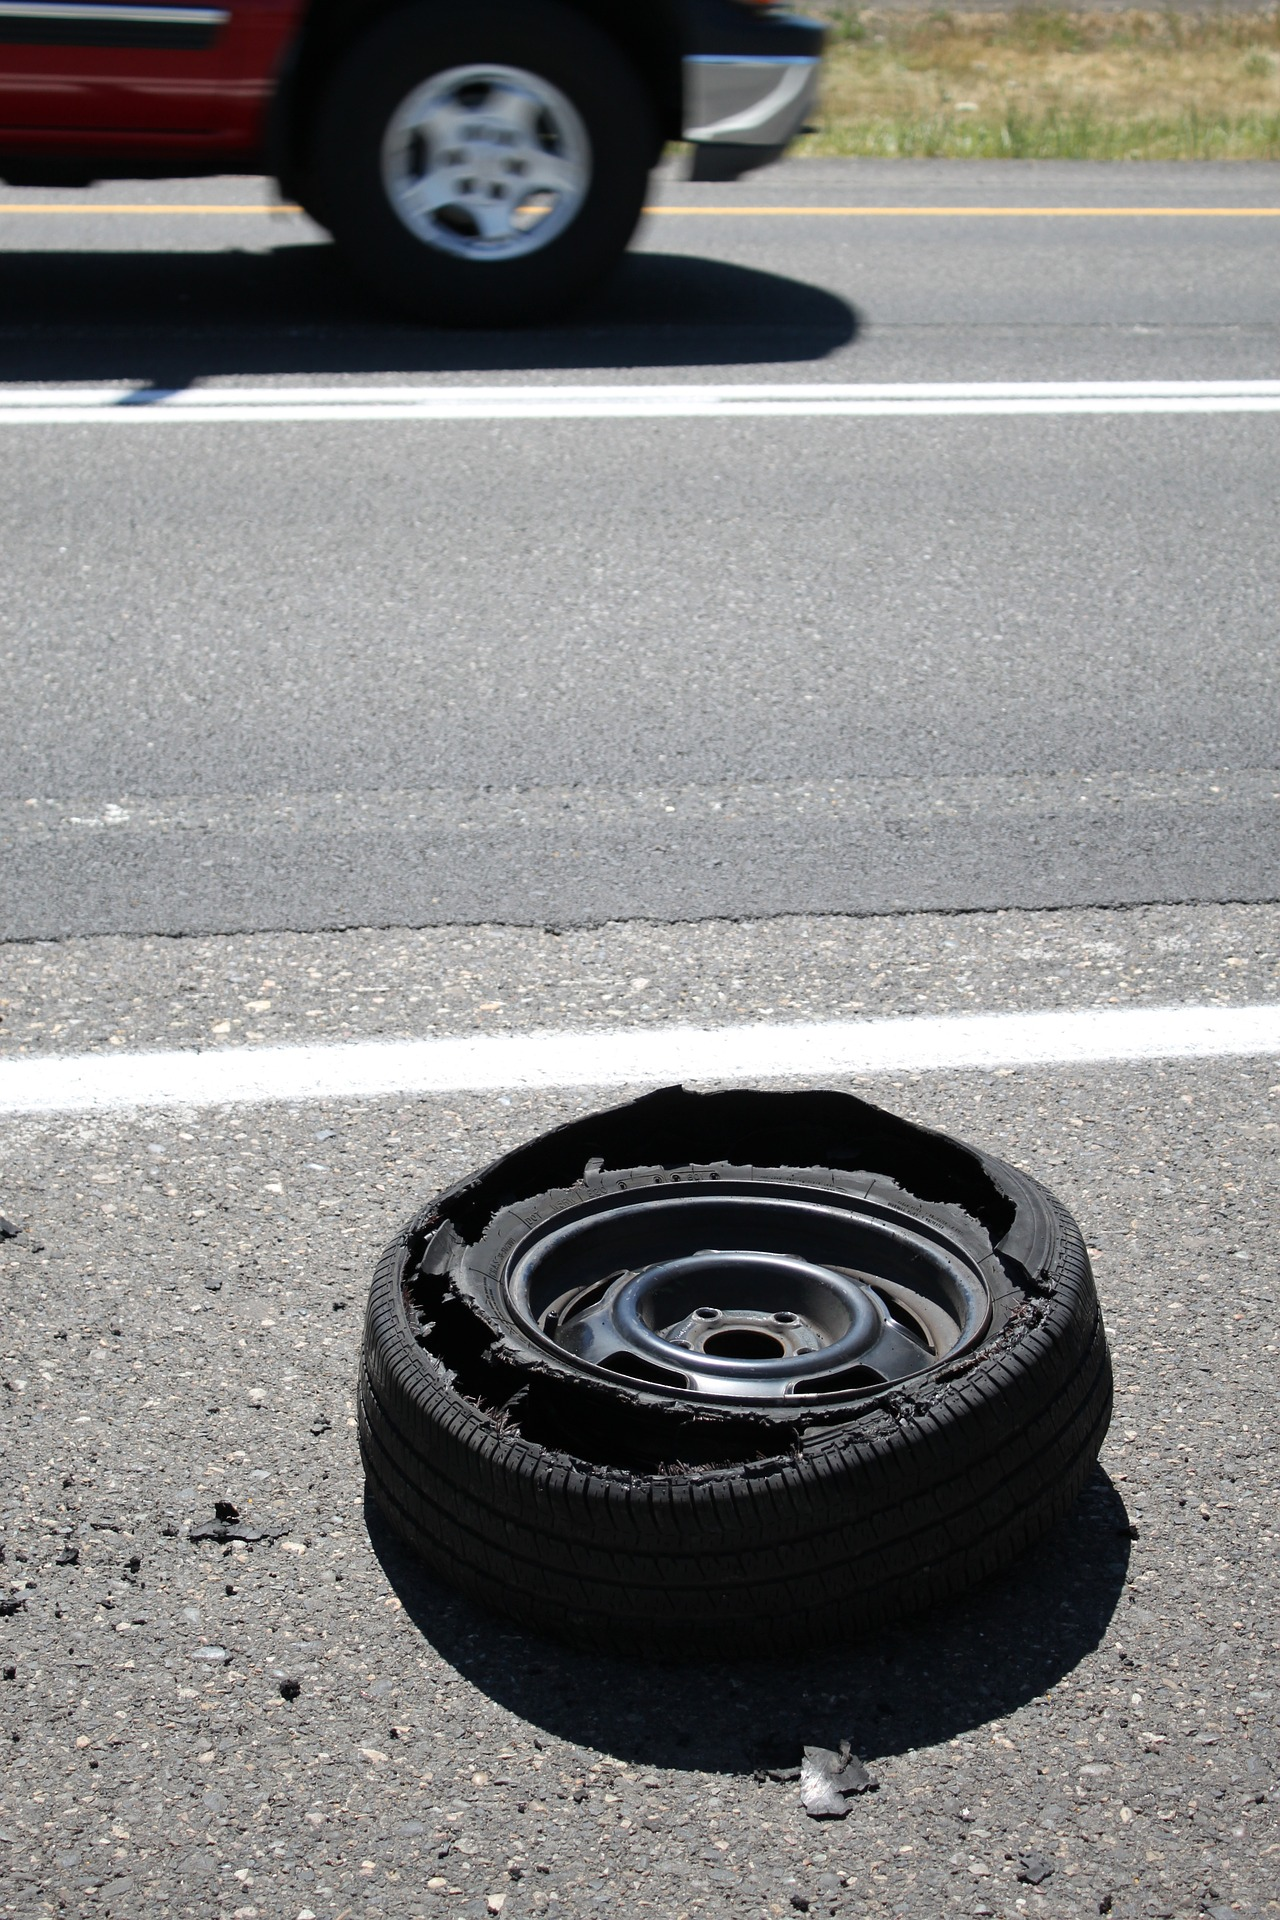 Car Accident Texas Article Image